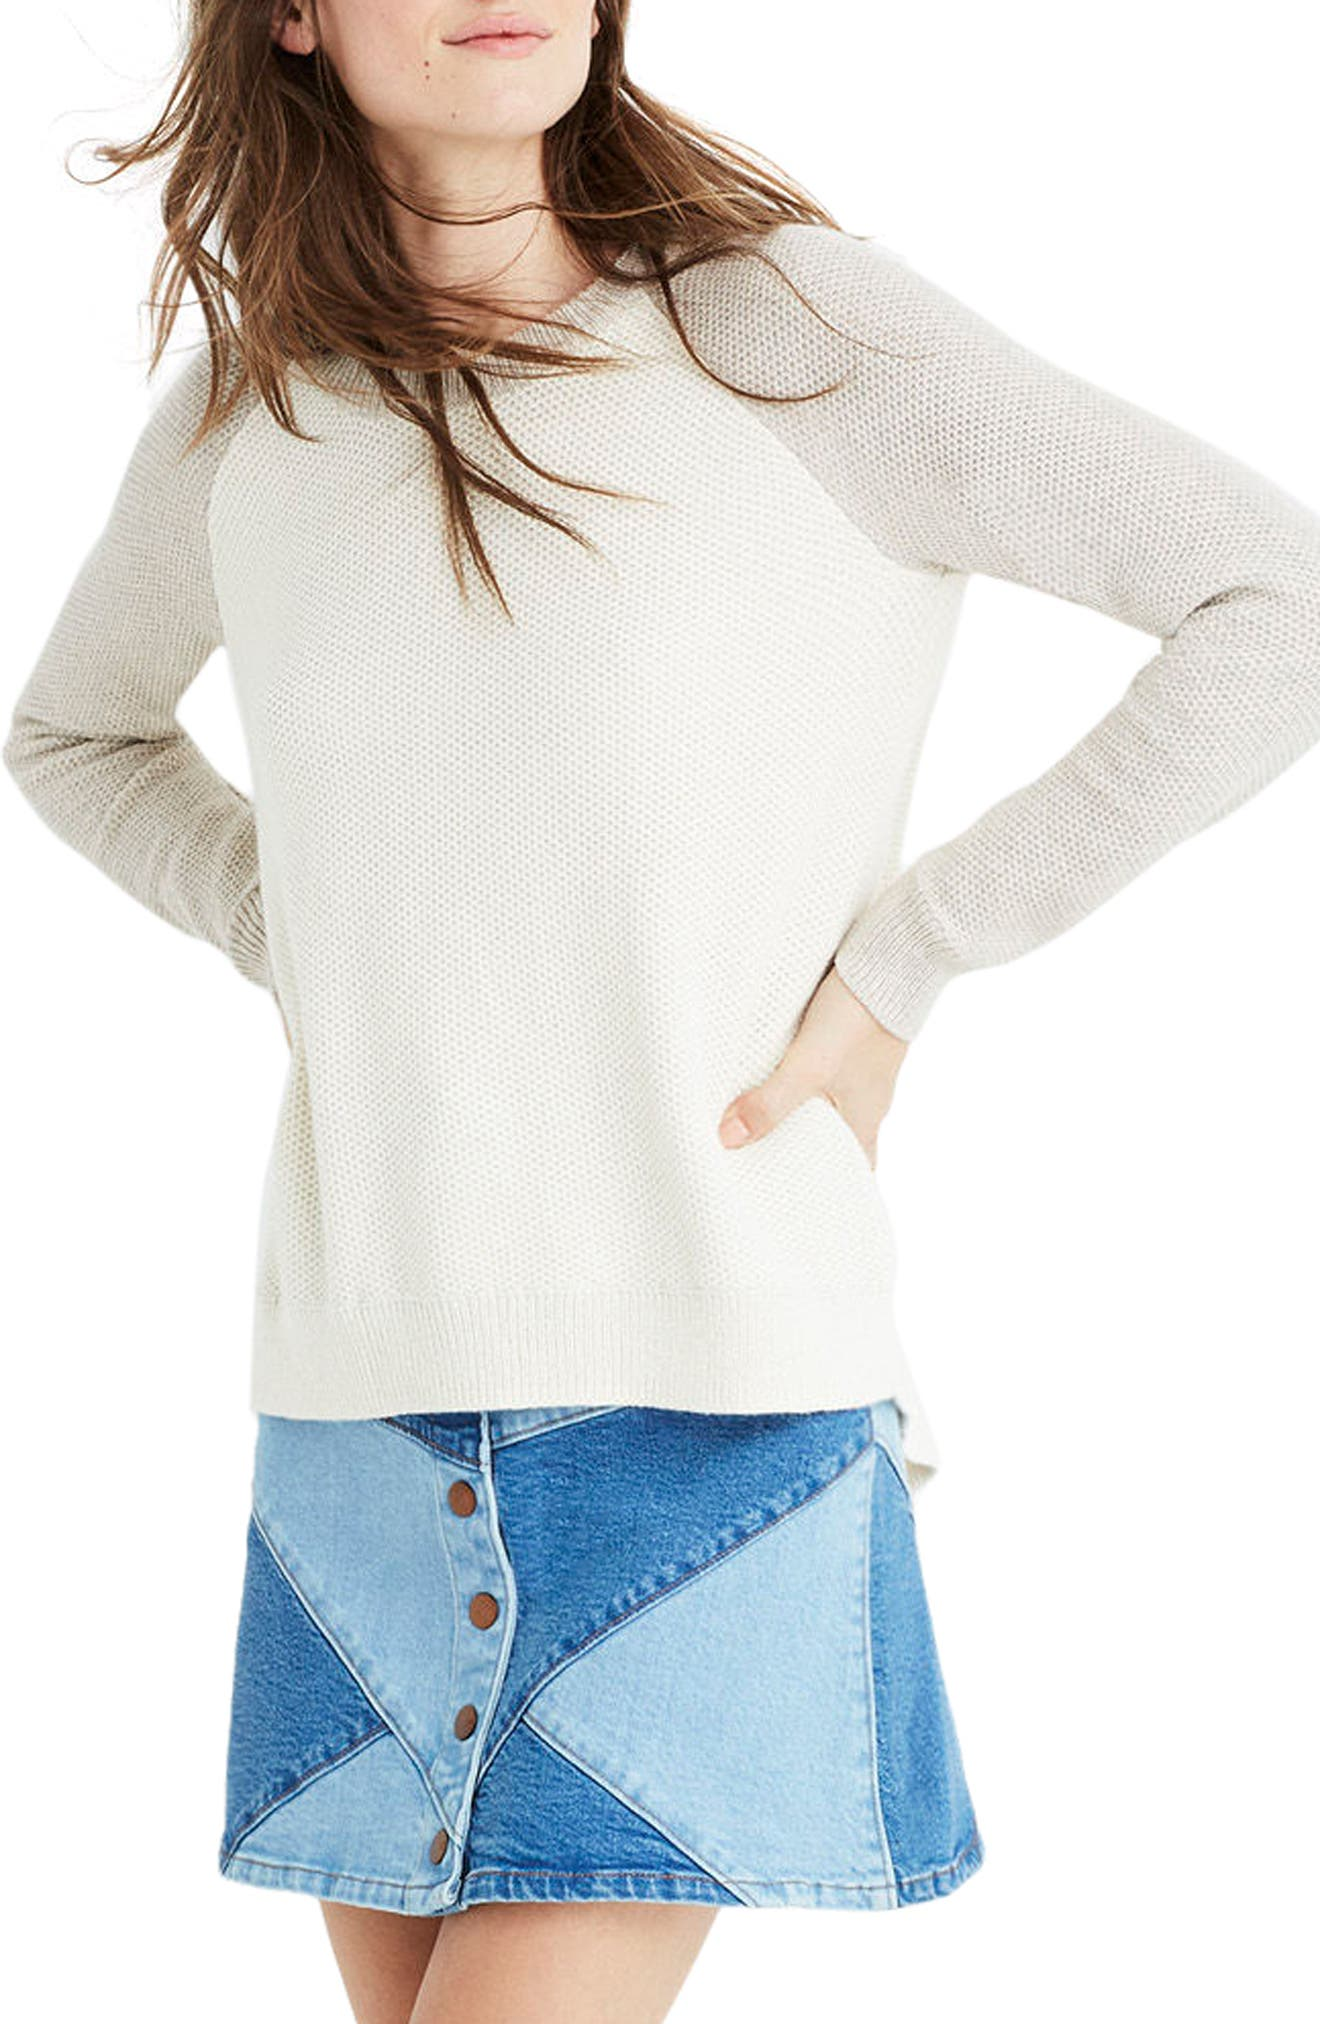 Crossback Sweater,                             Main thumbnail 1, color,                             022